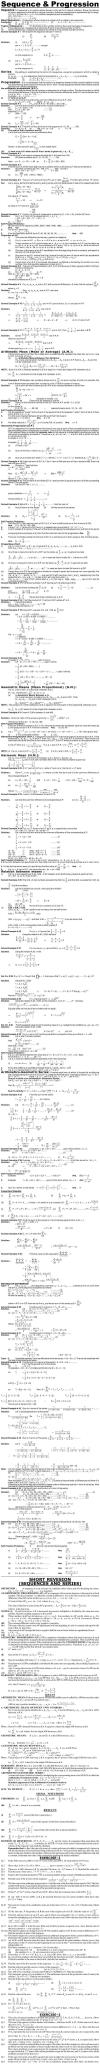 Maths Study Material - Chapter 3